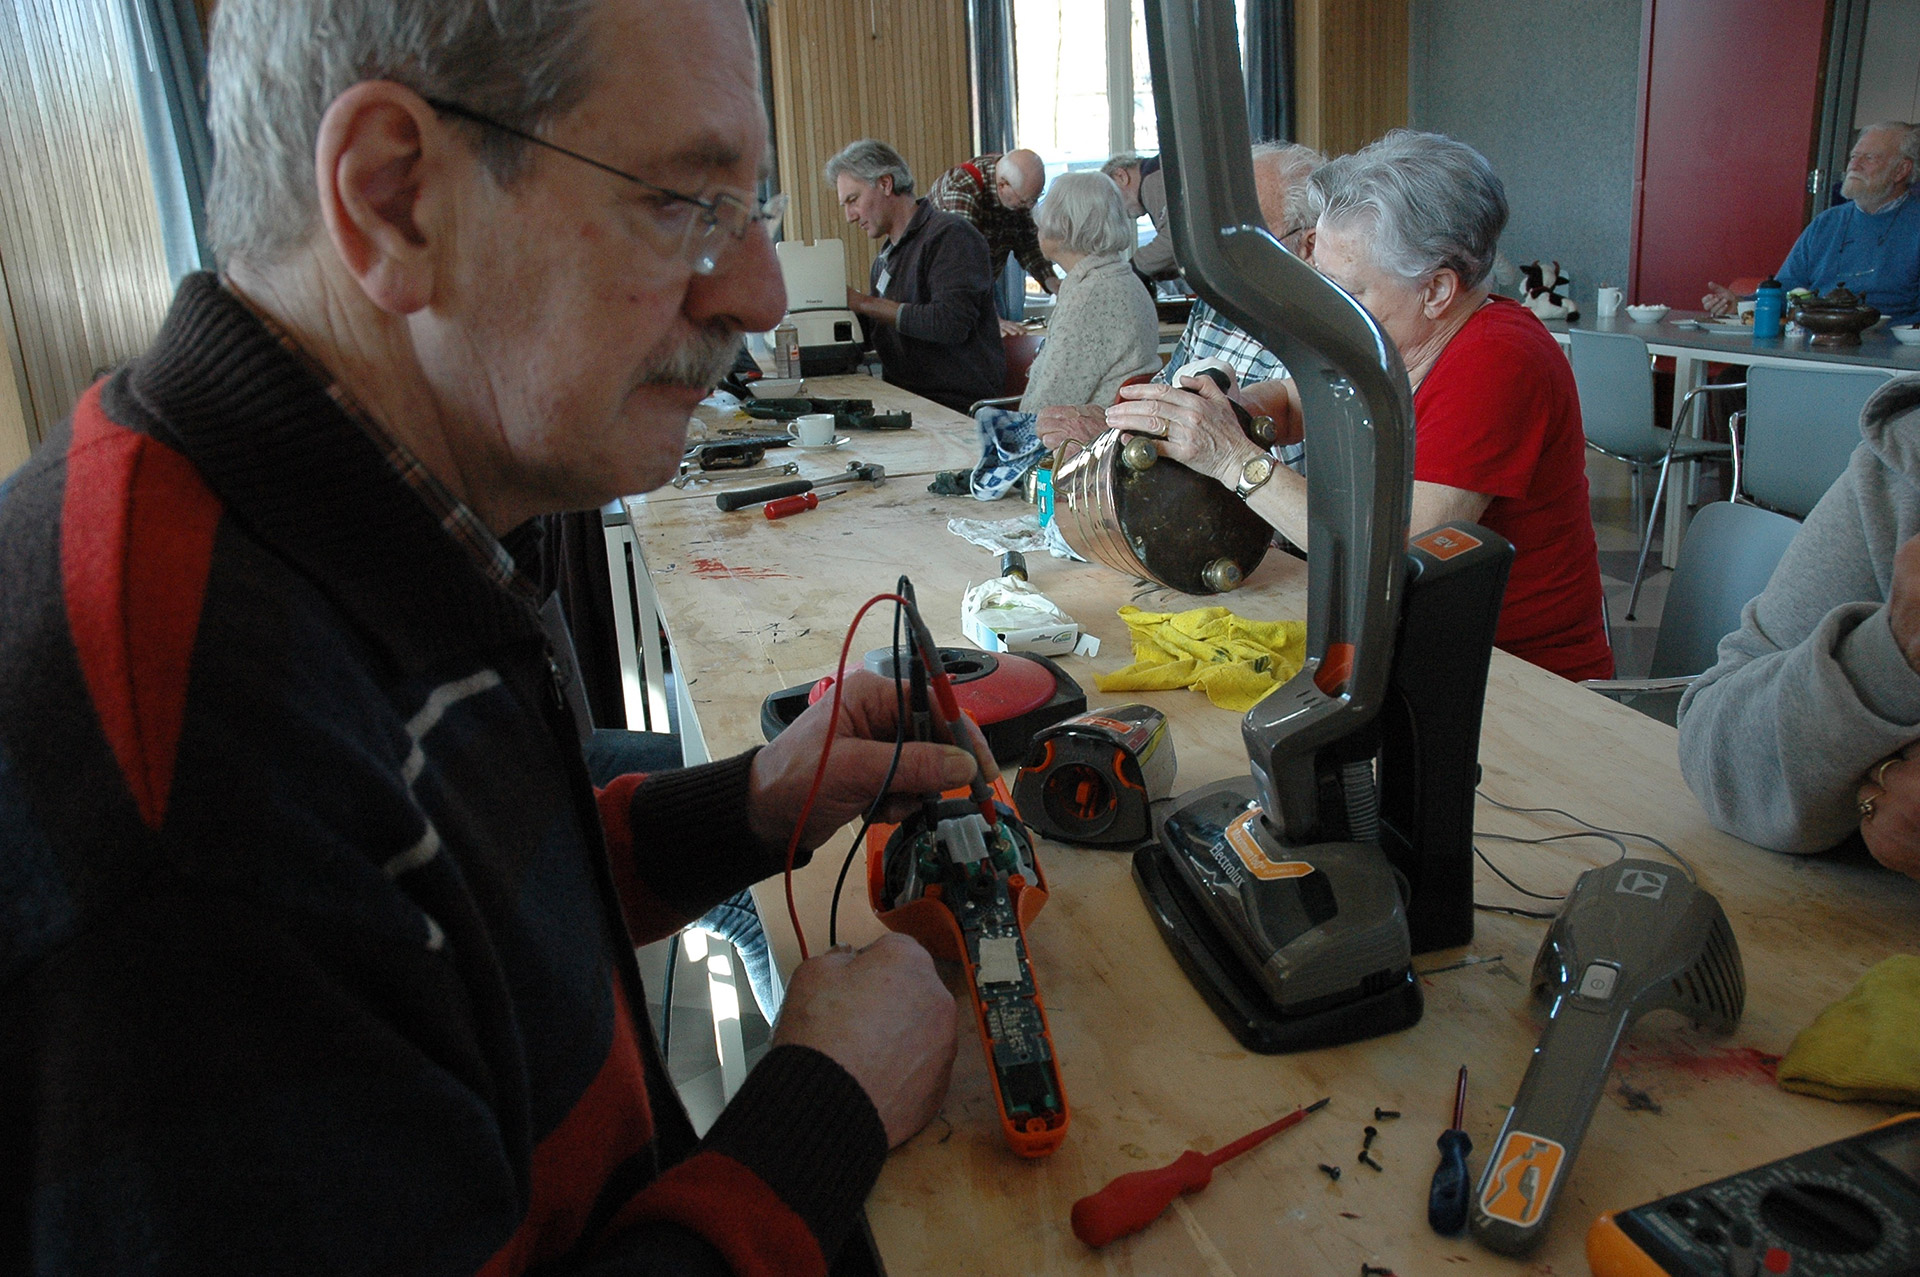 Repair Café elektrische apparaten